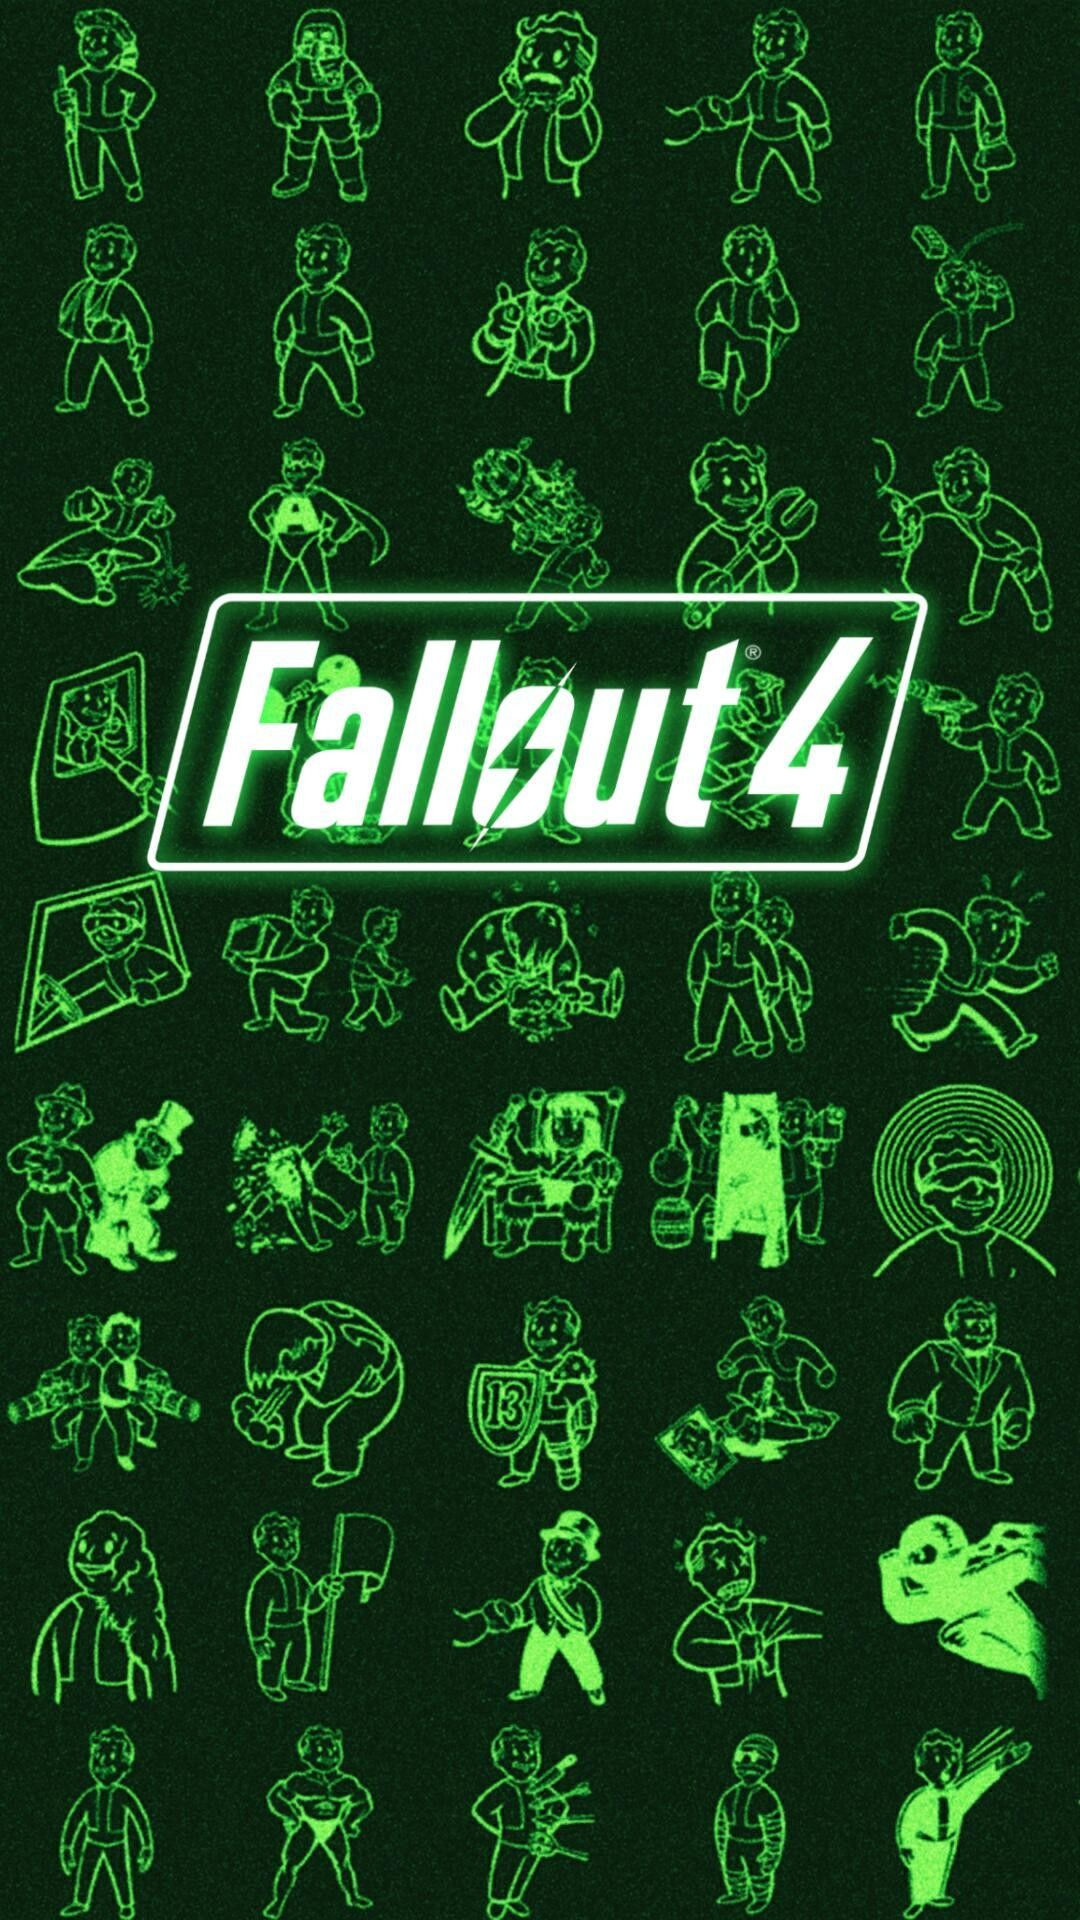 Fallout 4 wallpaper phone 61 images 1920x1080 fallout 4 wallpaper hd fallout 4 wallpaper phone voltagebd Images